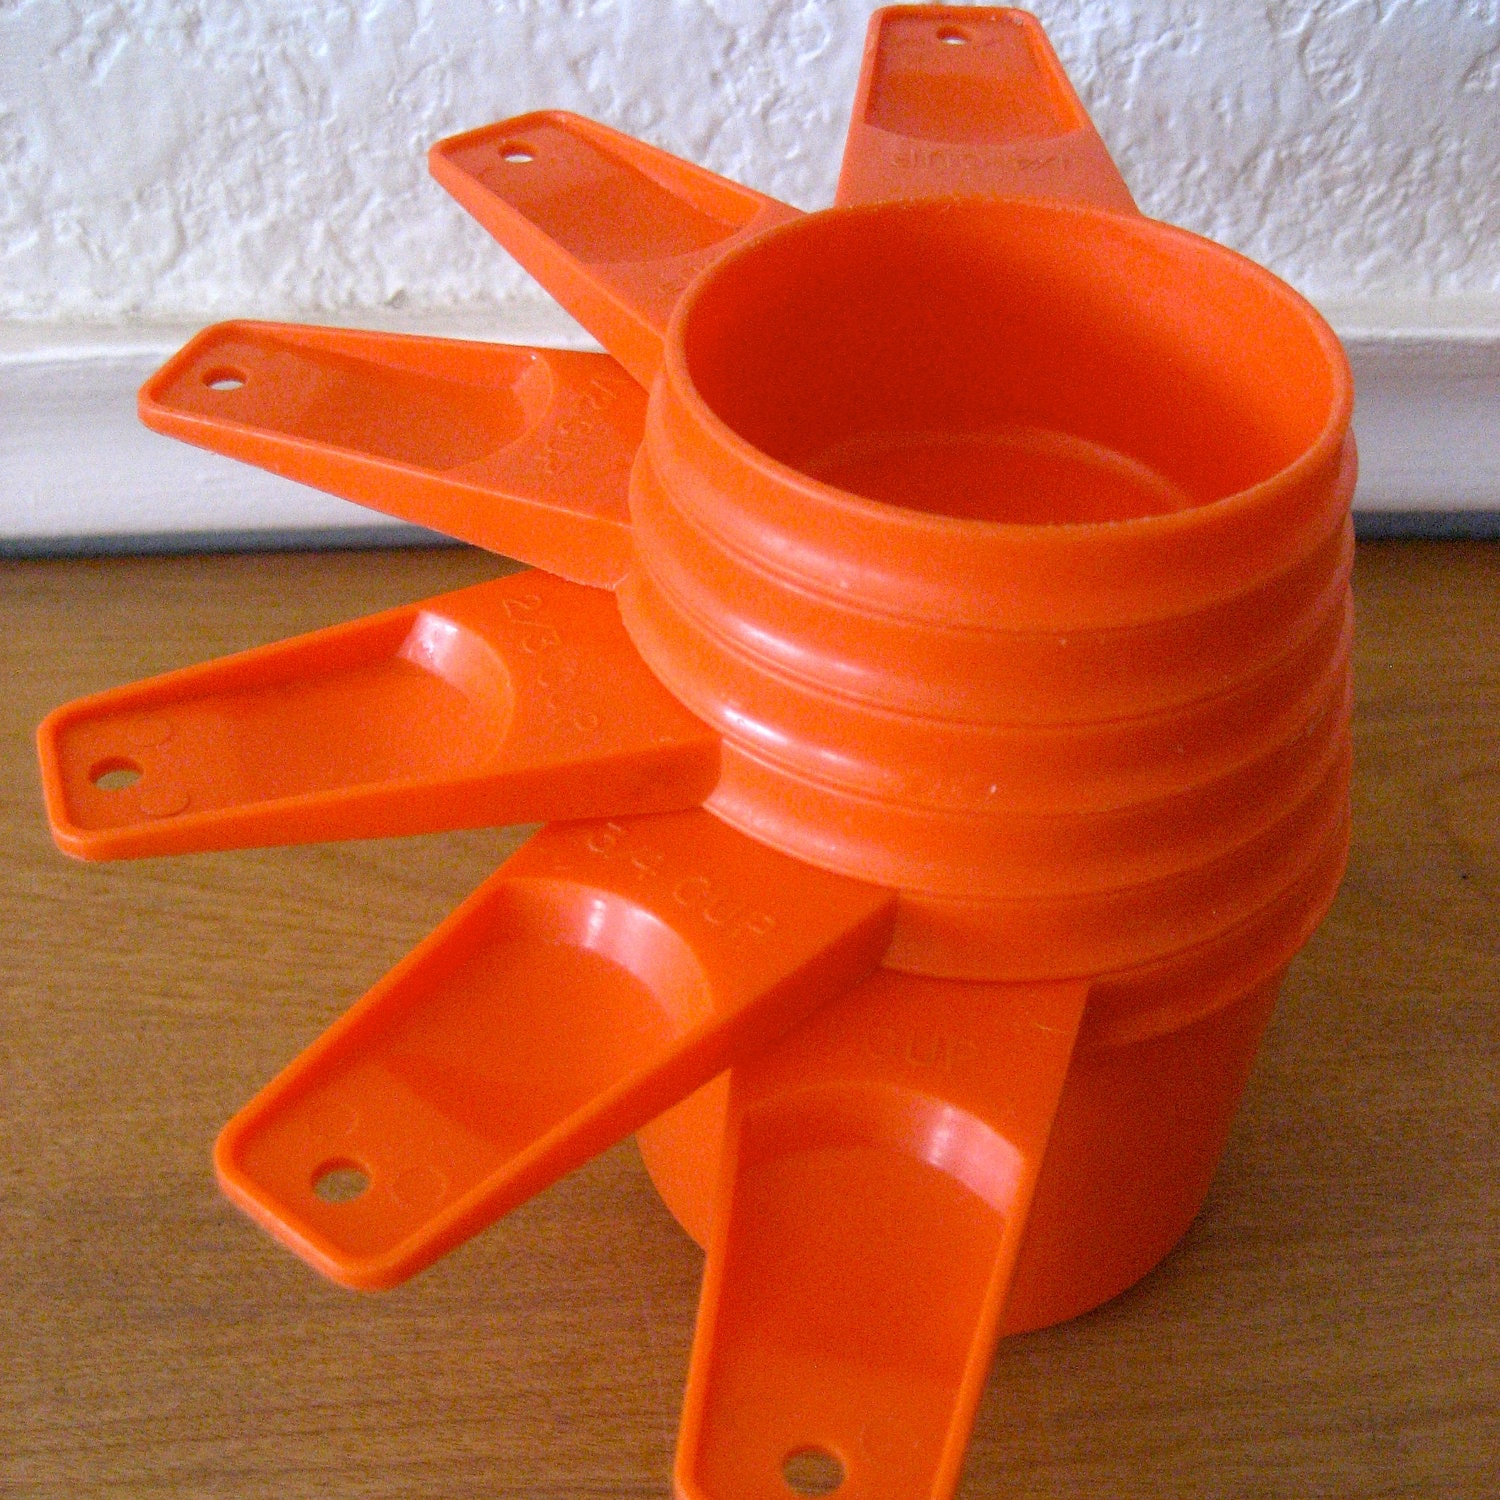 Vintage Tupperware Orange Measuring Cups Set Of 6